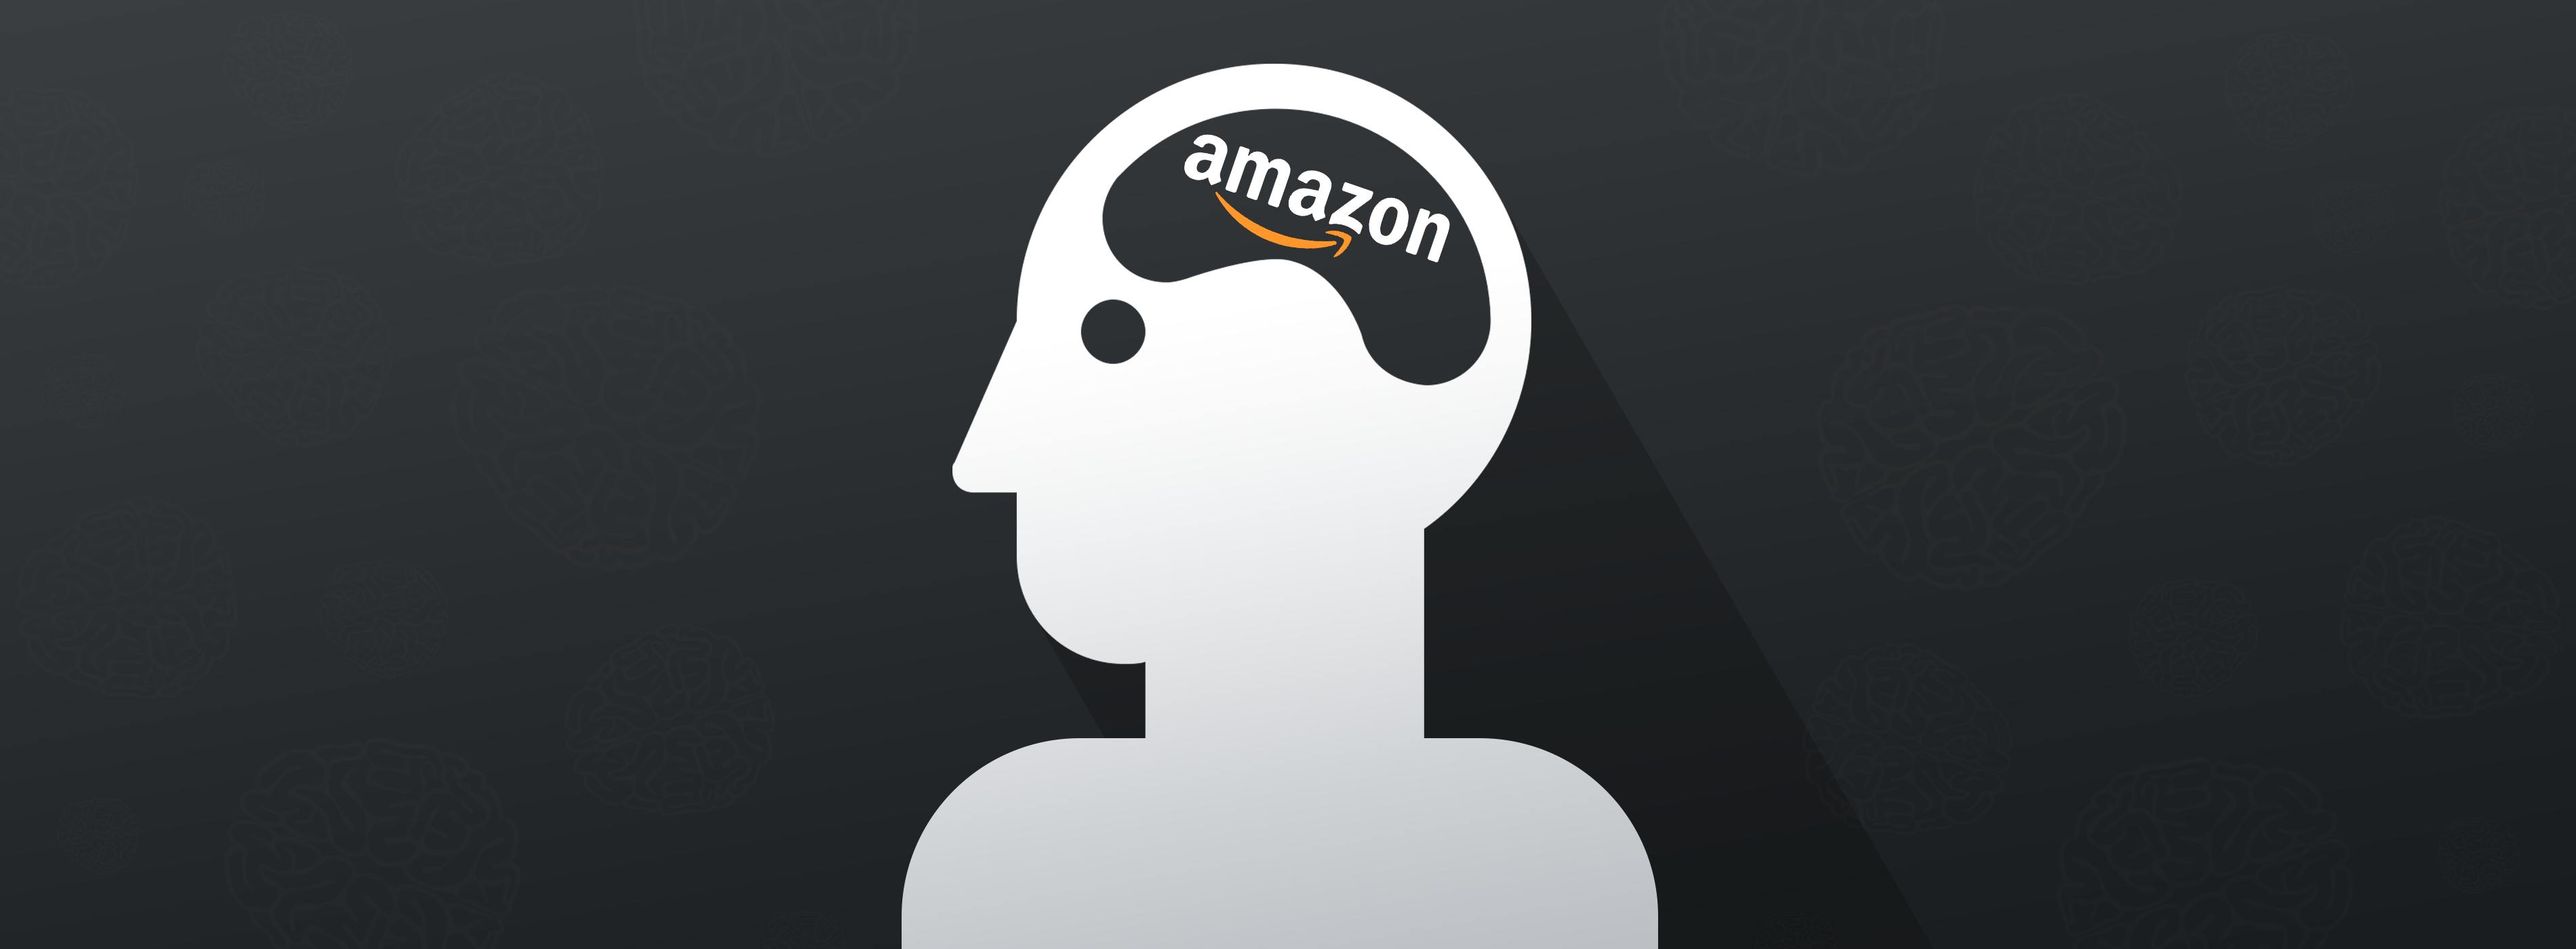 How Amazon Uses Psychology to Drive Sales